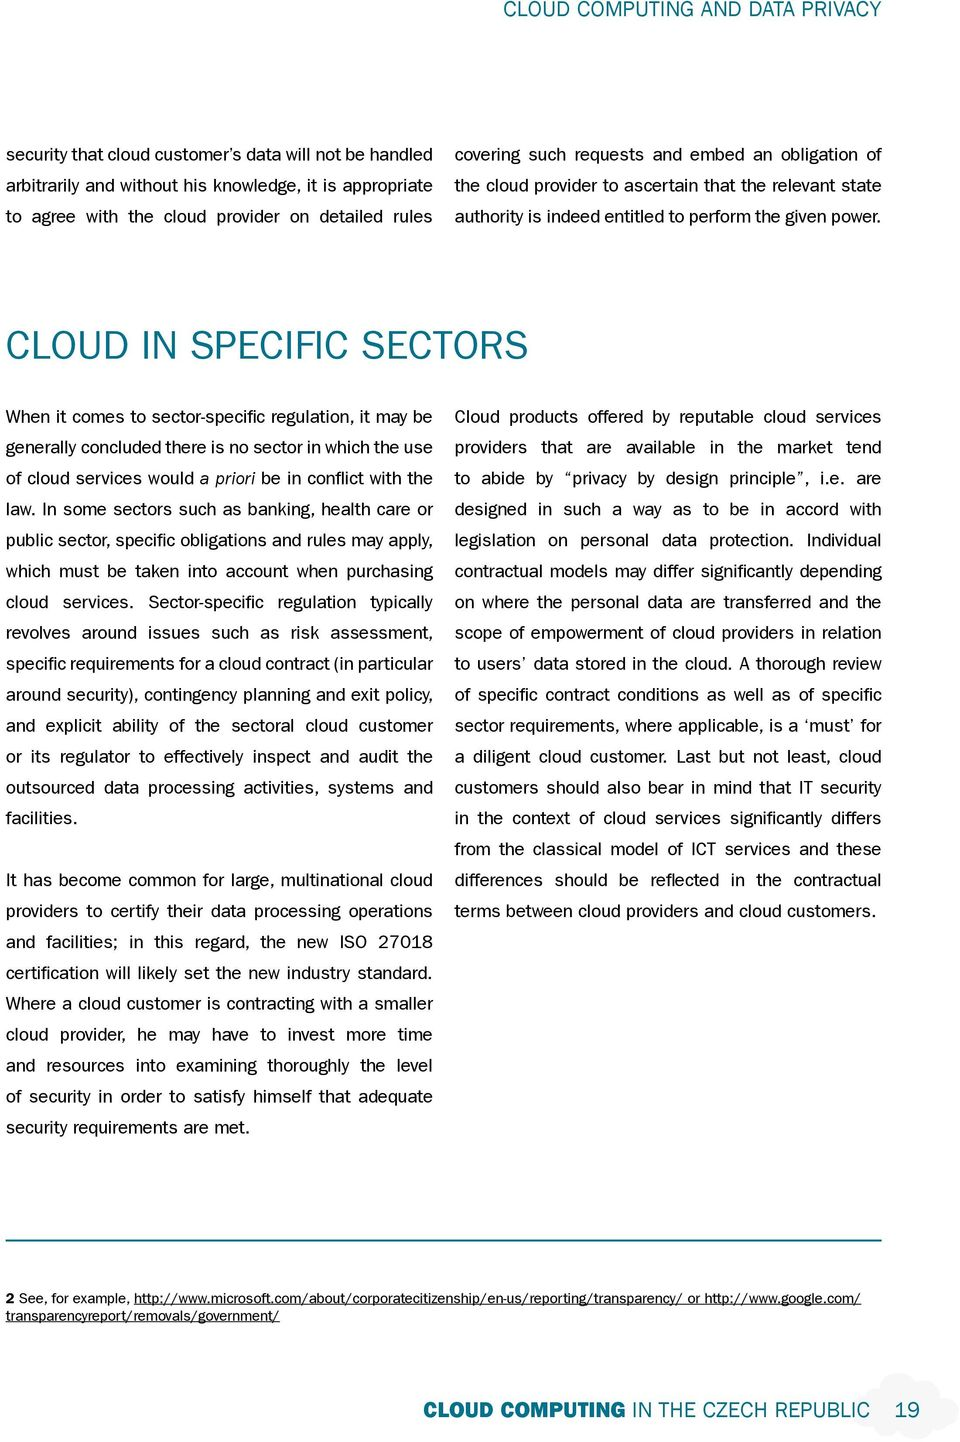 Cloud in Specific Sectors When it comes to sector-specific regulation, it may be generally concluded there is no sector in which the use of cloud services would a priori be in conflict with the law.